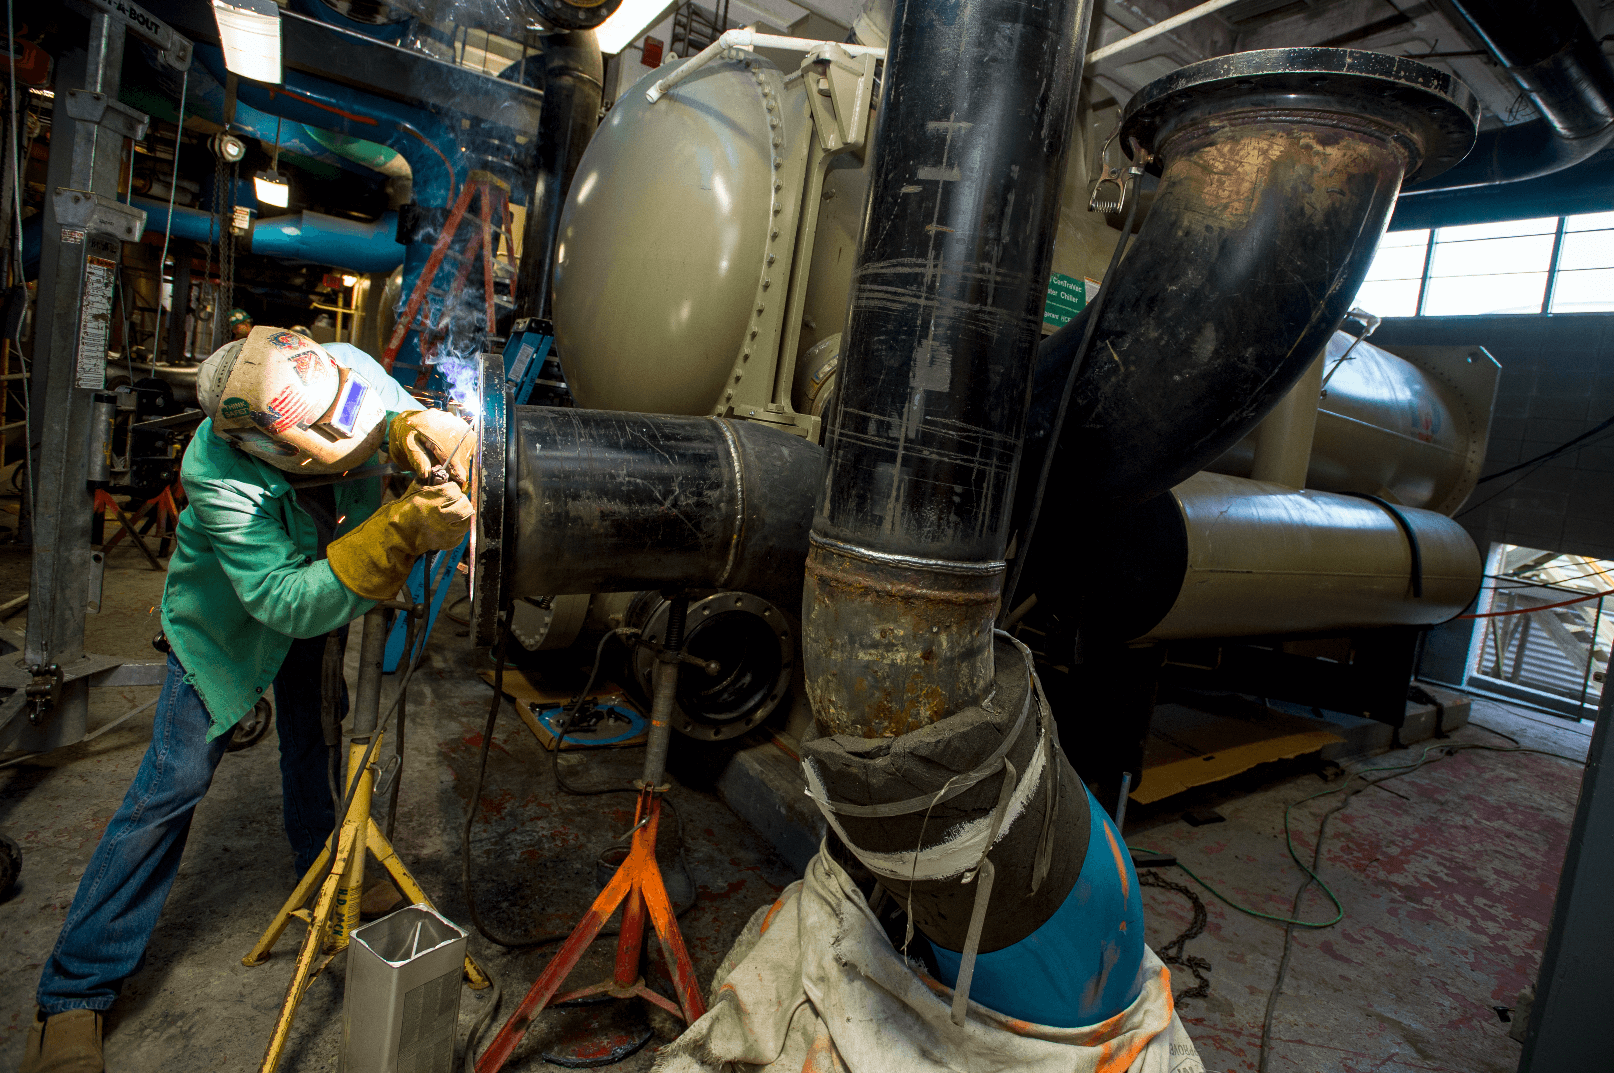 A welder working on pipes